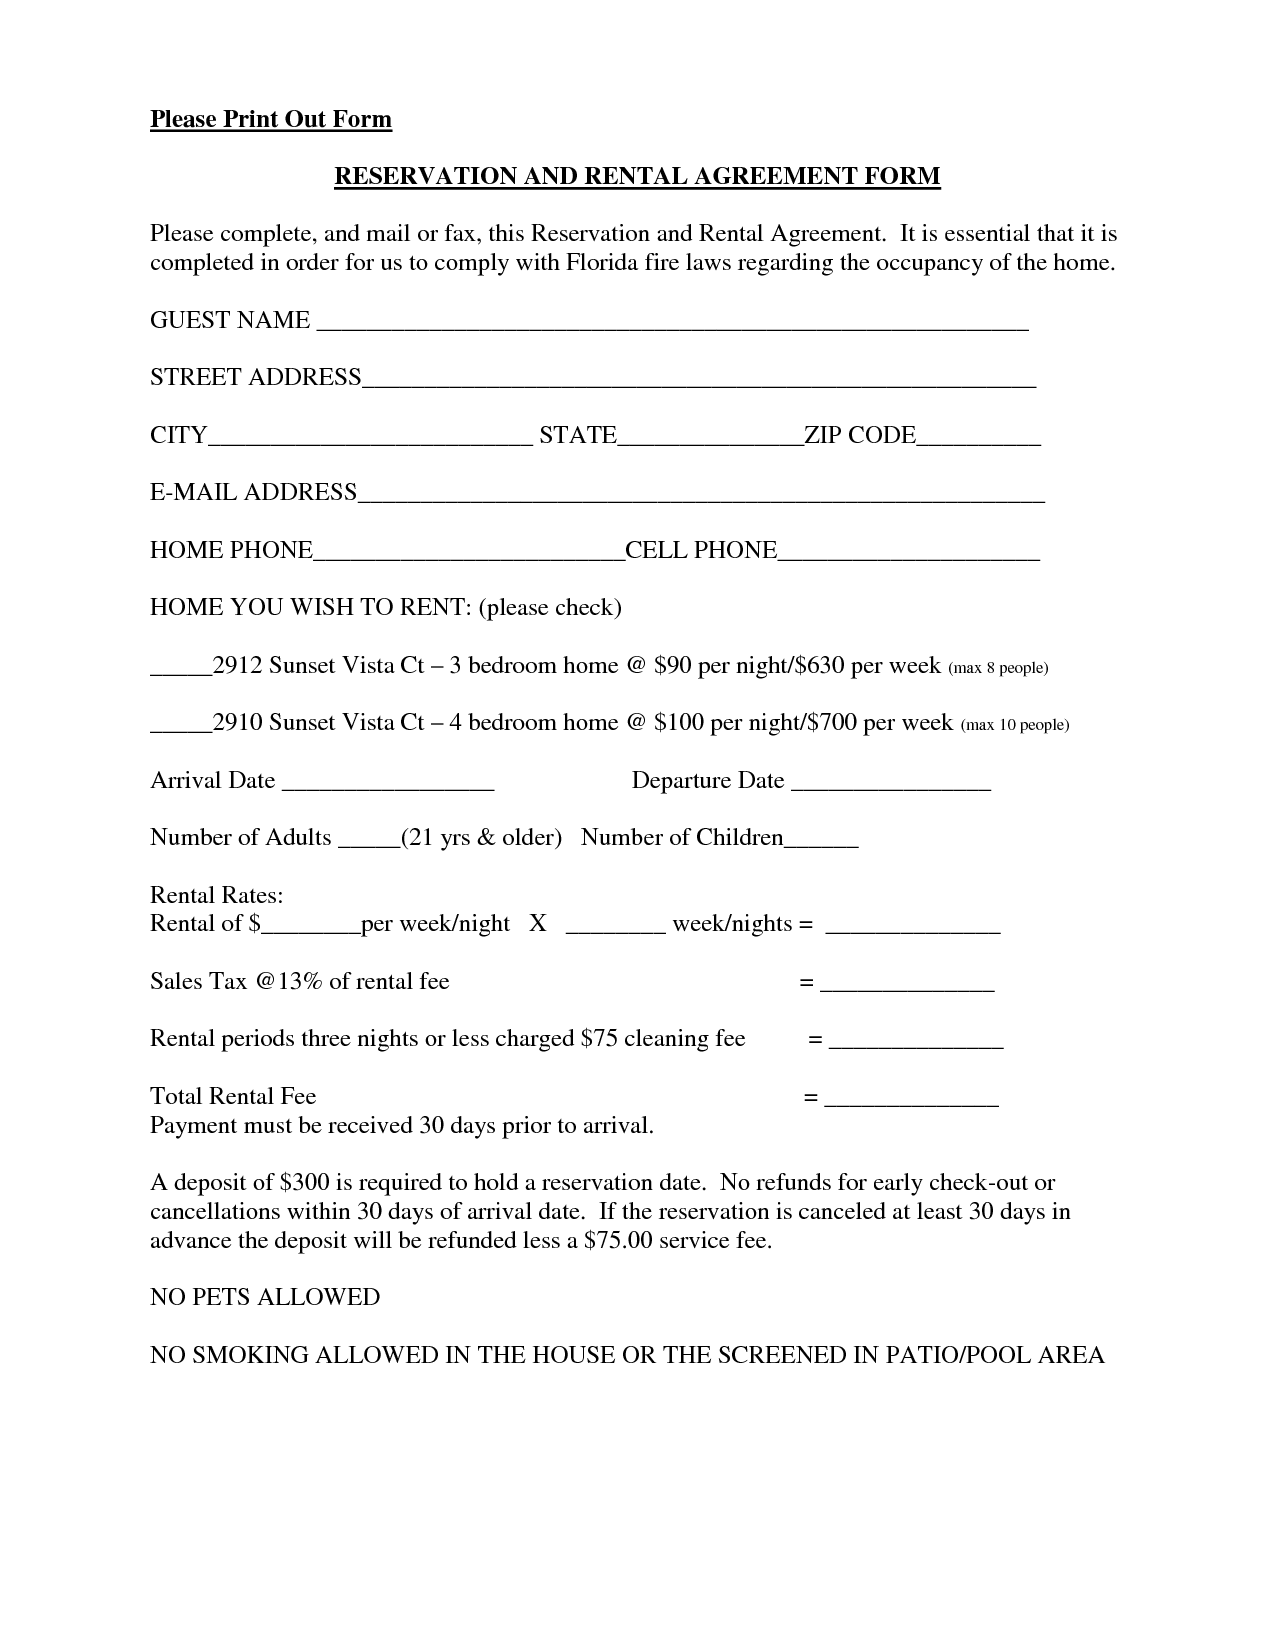 free lease agreement template for renting a room forum lease agreement form